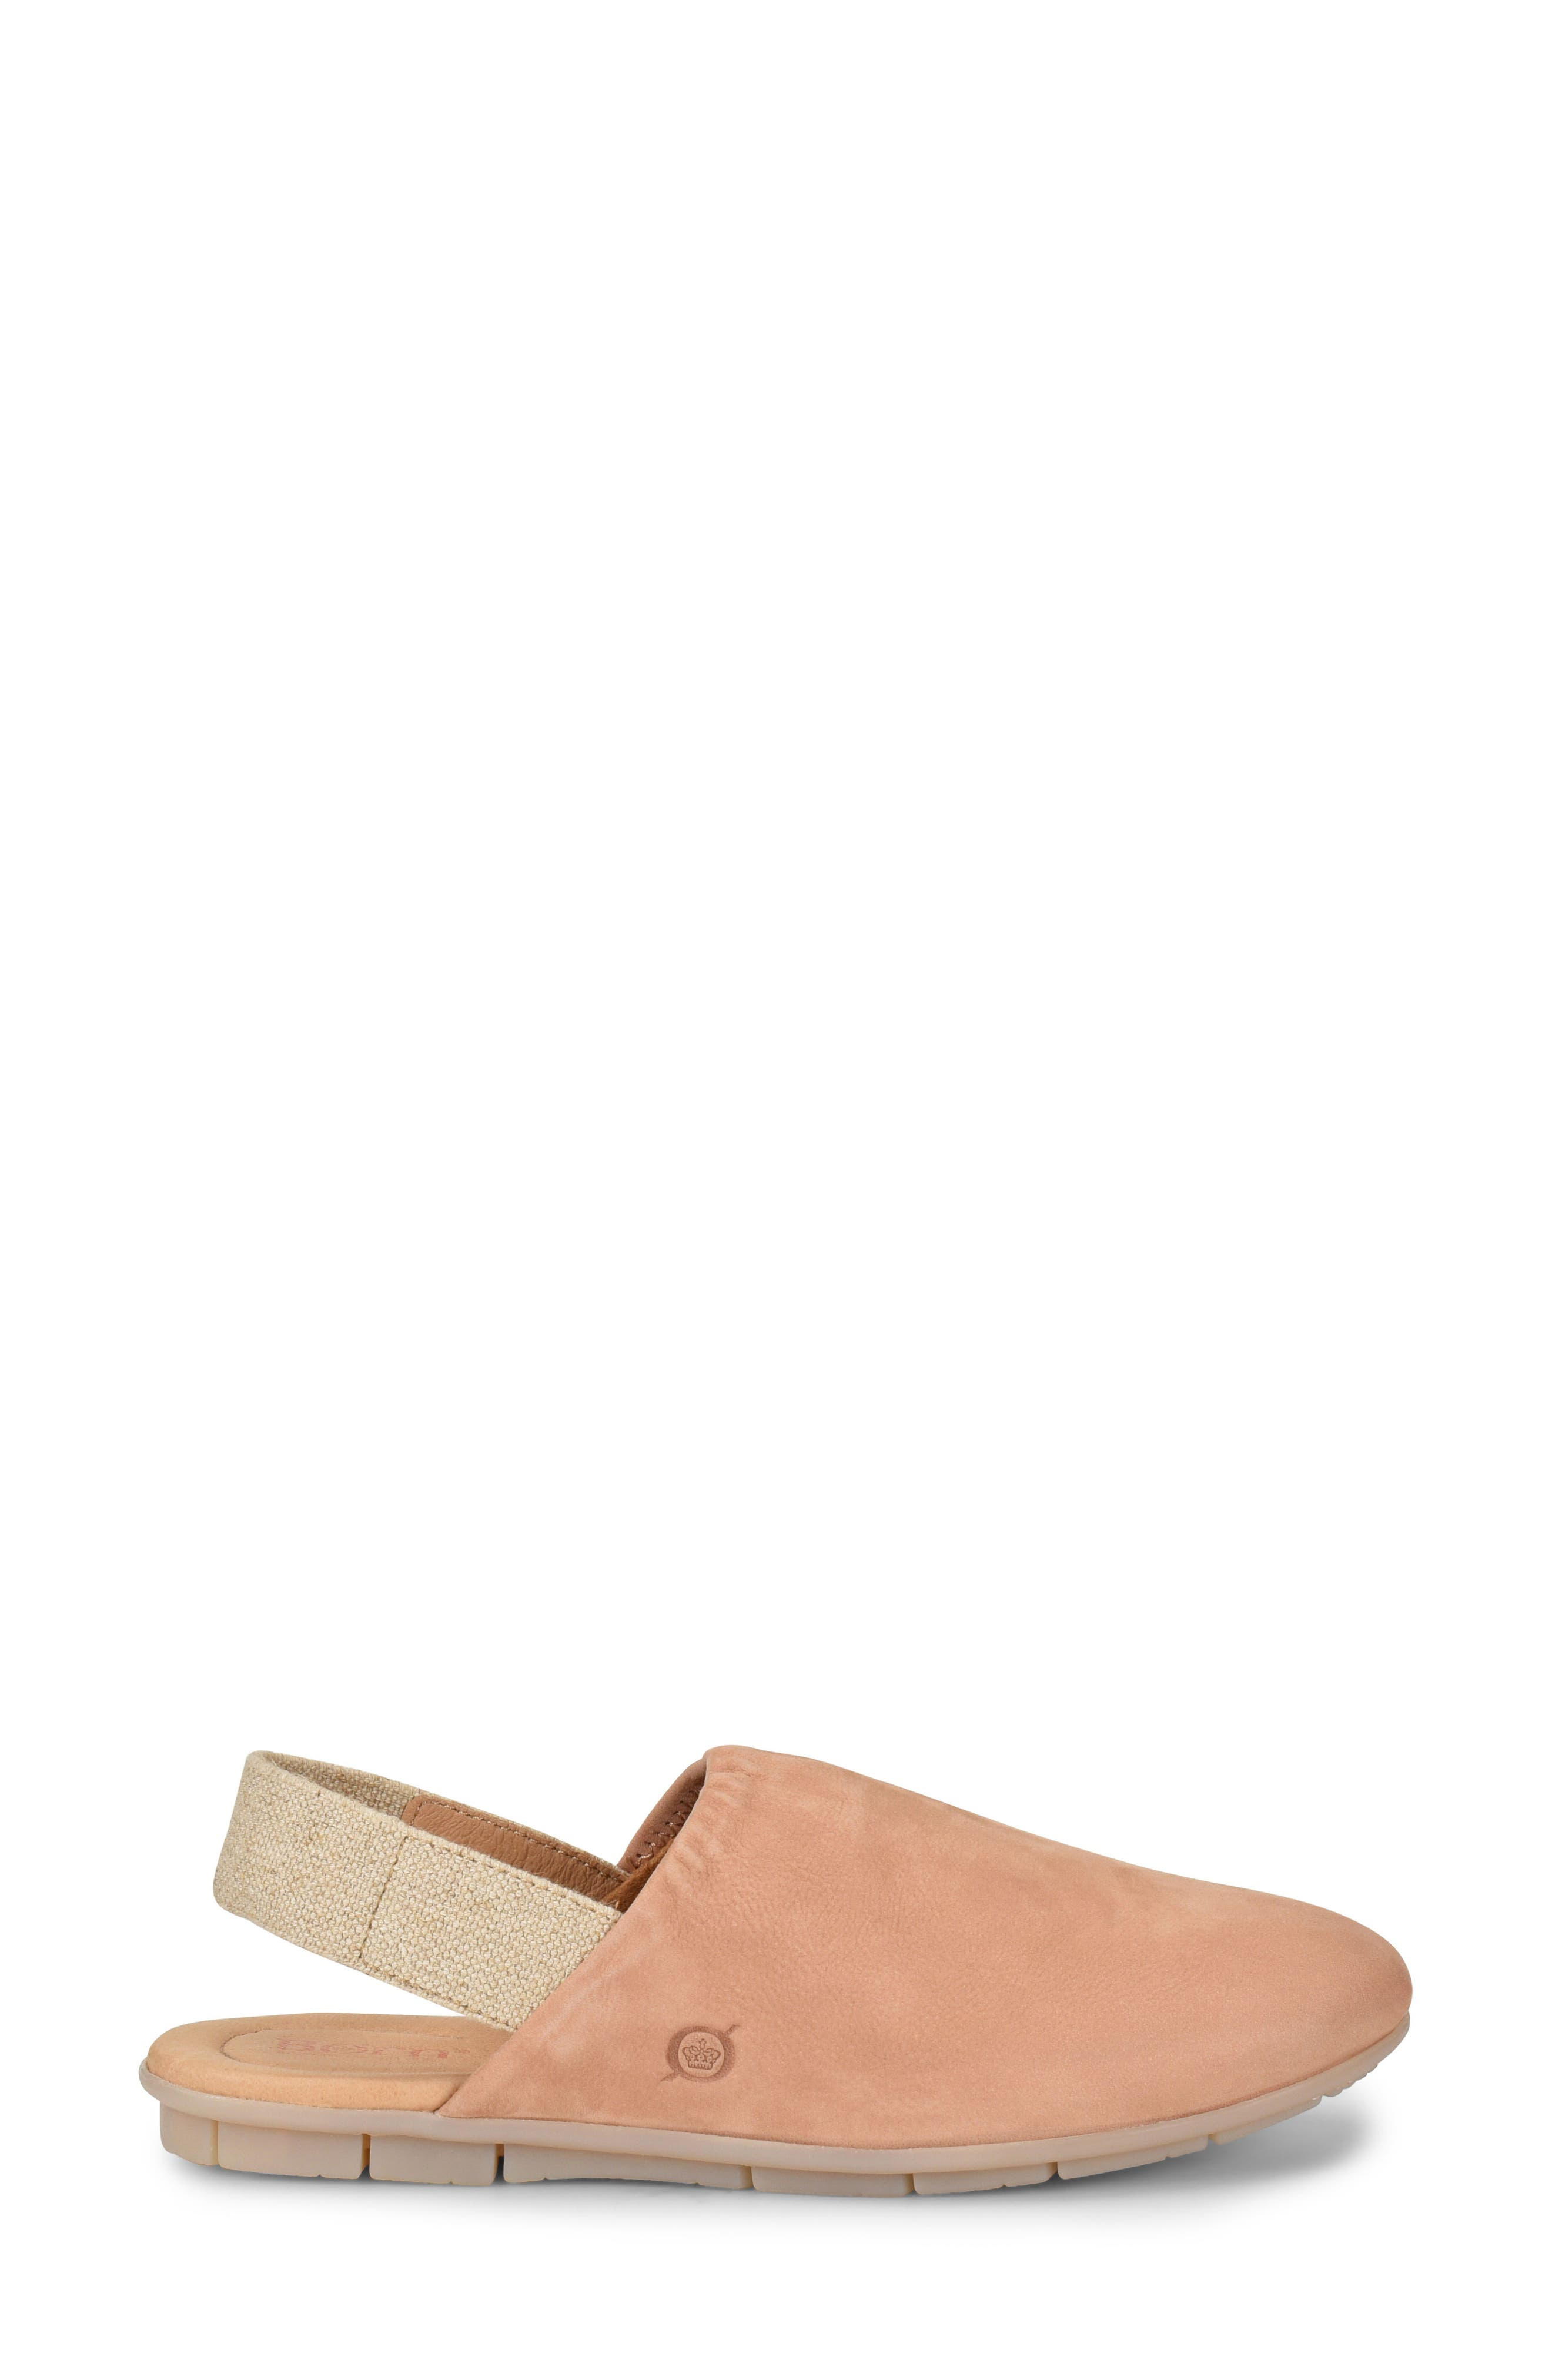 Bowe Slingback Flat,                             Alternate thumbnail 3, color,                             BLUSH NUBUCK